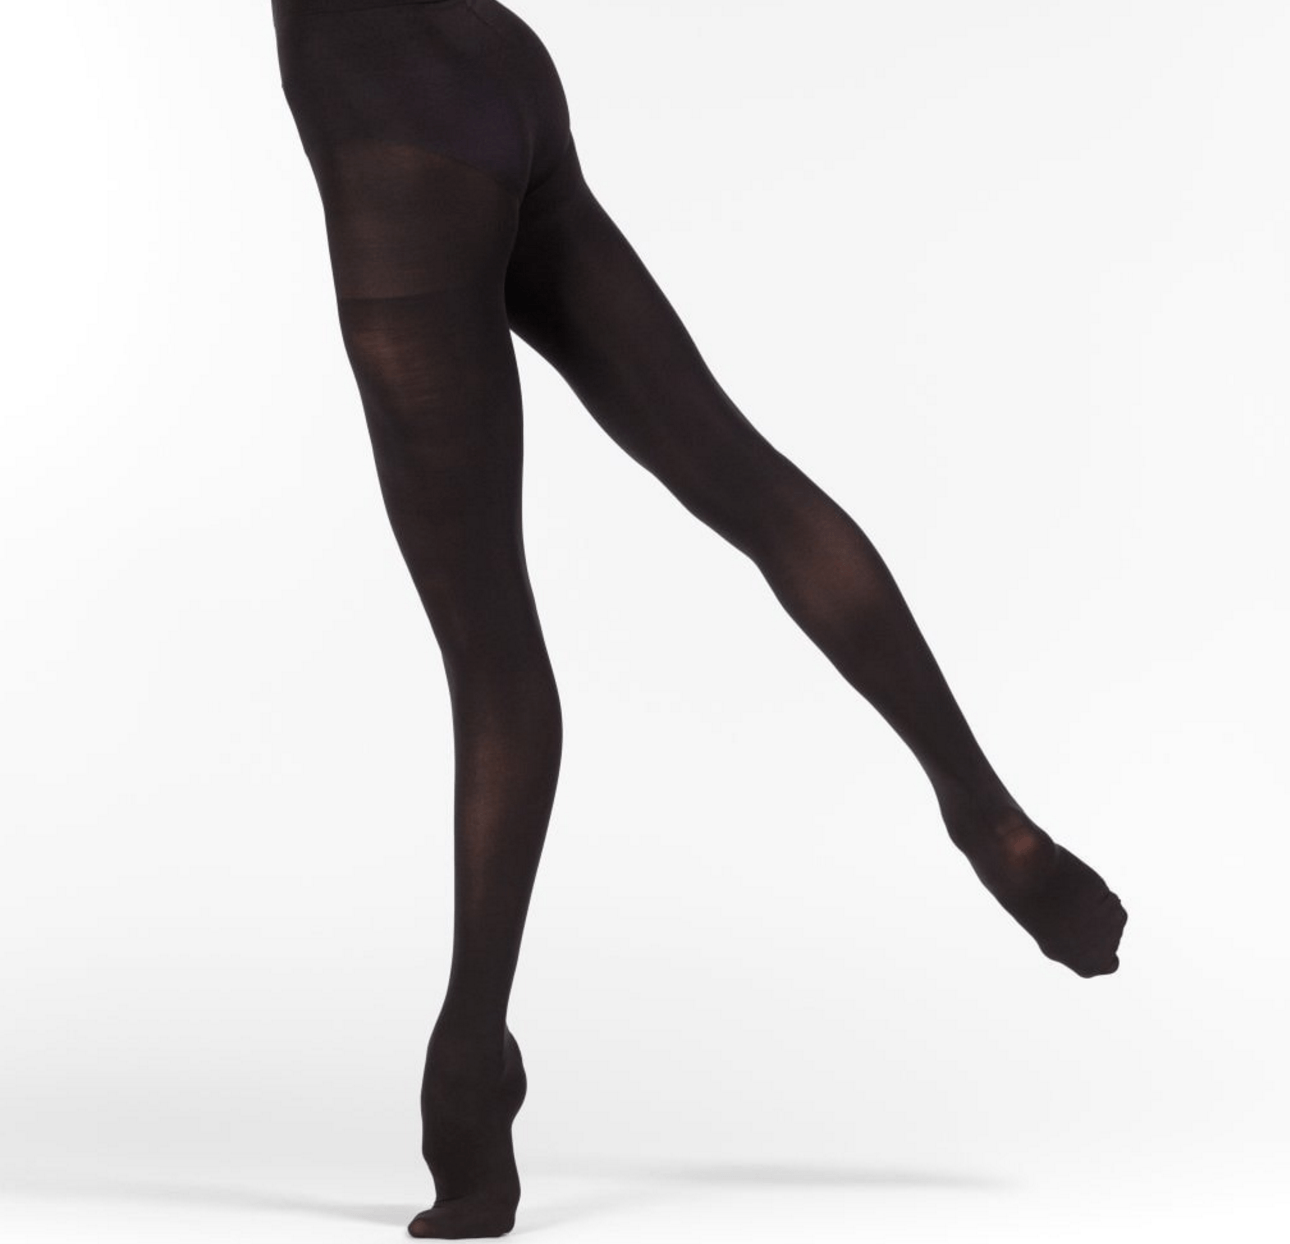 f87c712db6fa06 ZARELY Z3 RECOVER! COMPRESSION TIGHTS FOR DANCERS AND ATHLETES